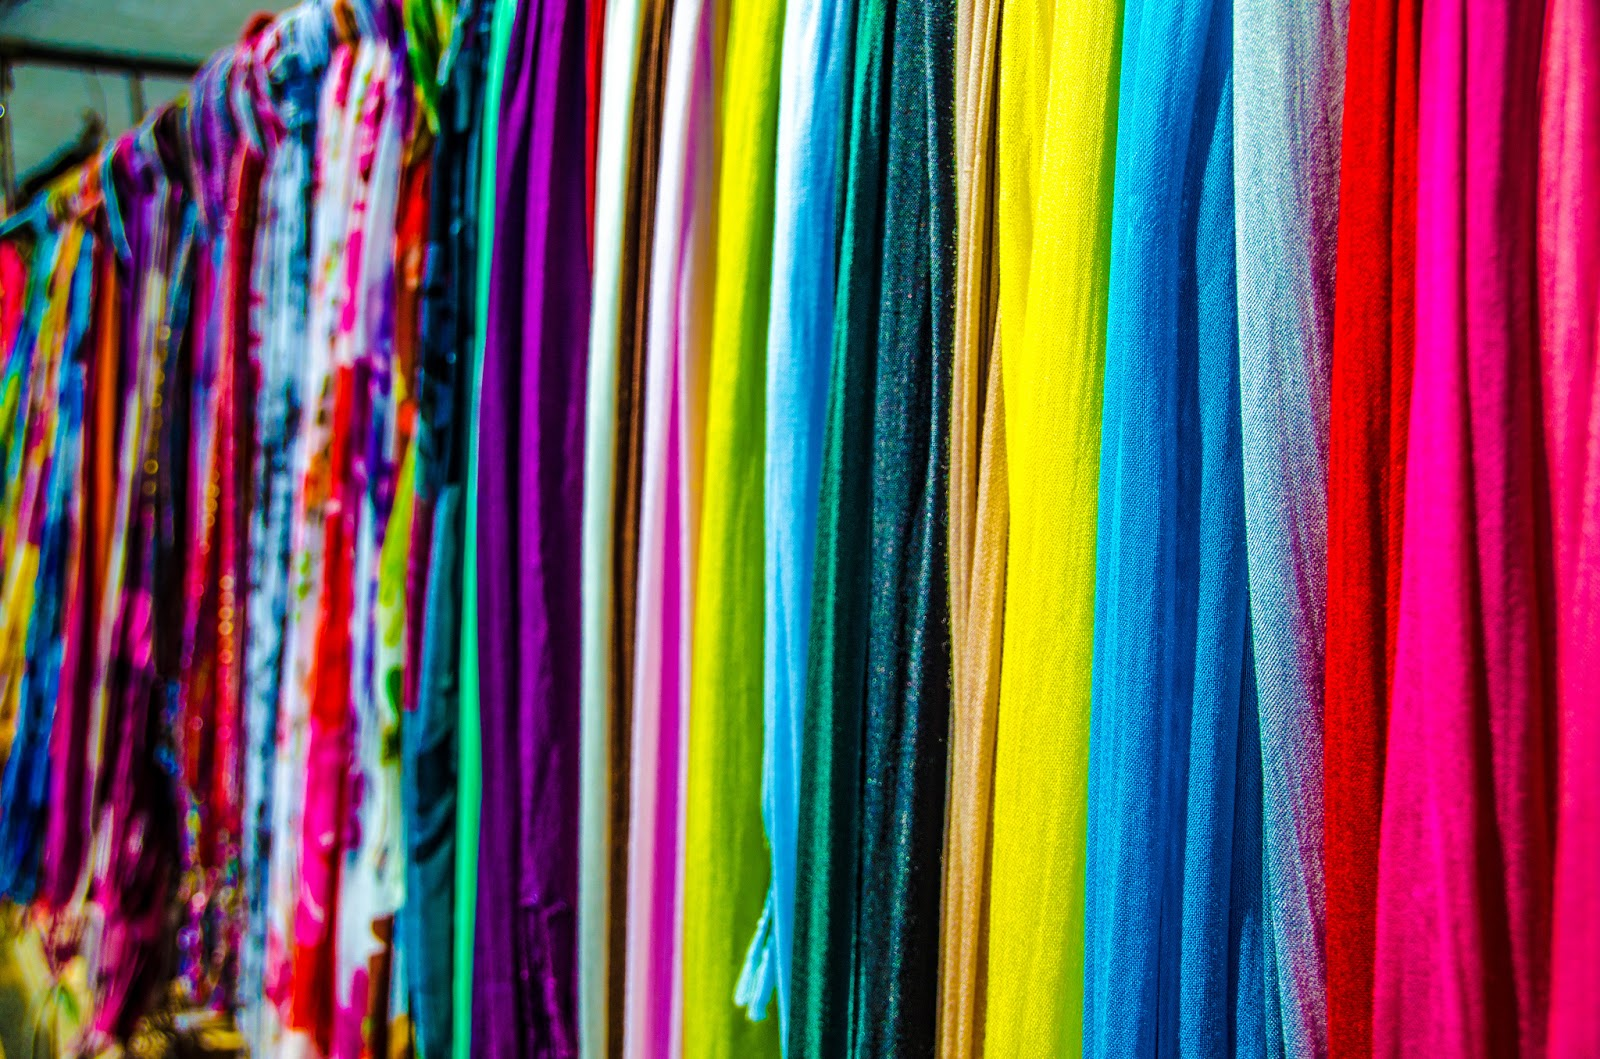 spectrophotometers help ensure quality control for garment manufacturers